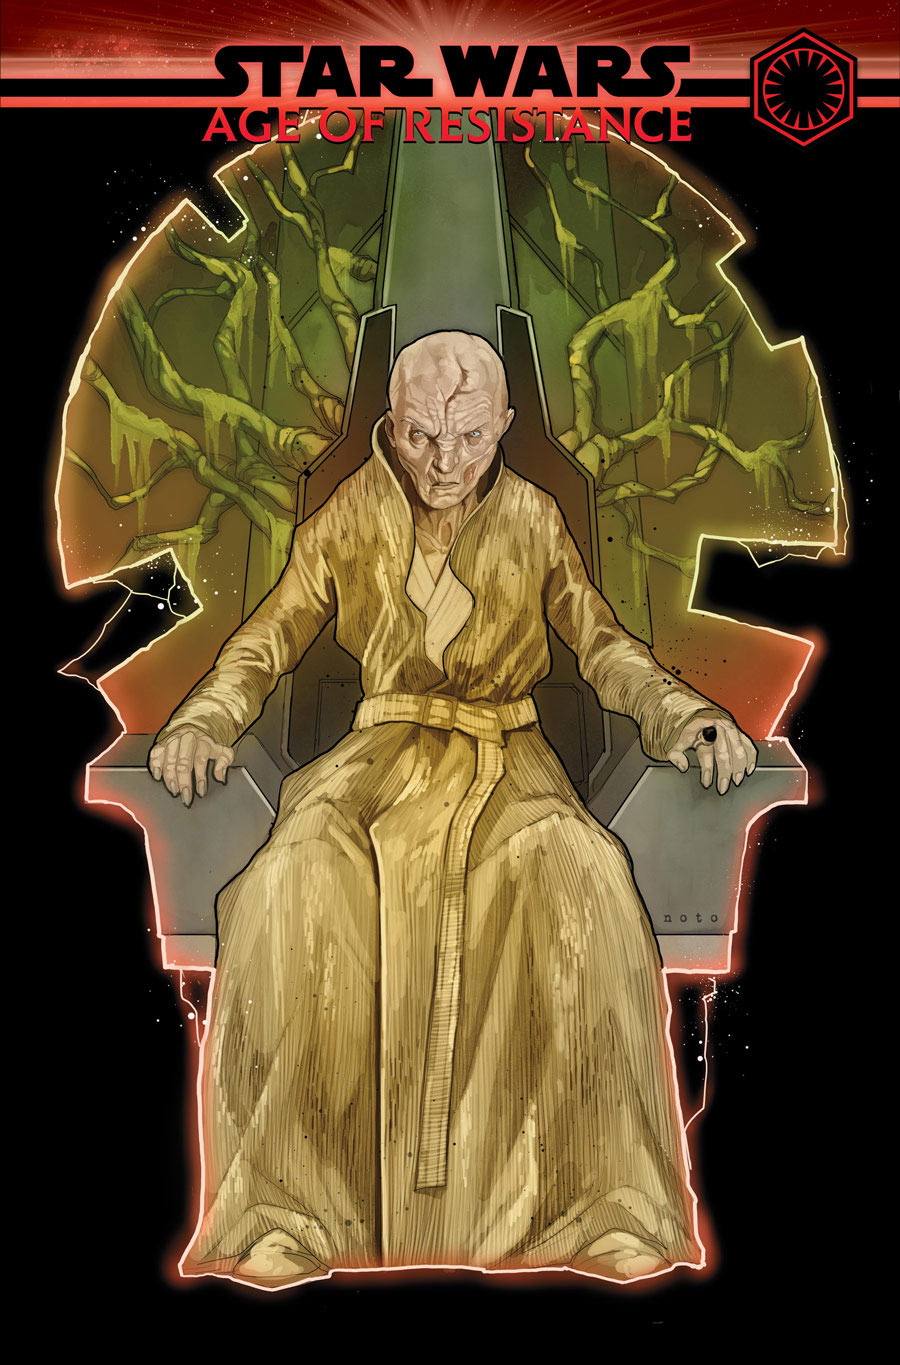 Age of Resistance: Snoke